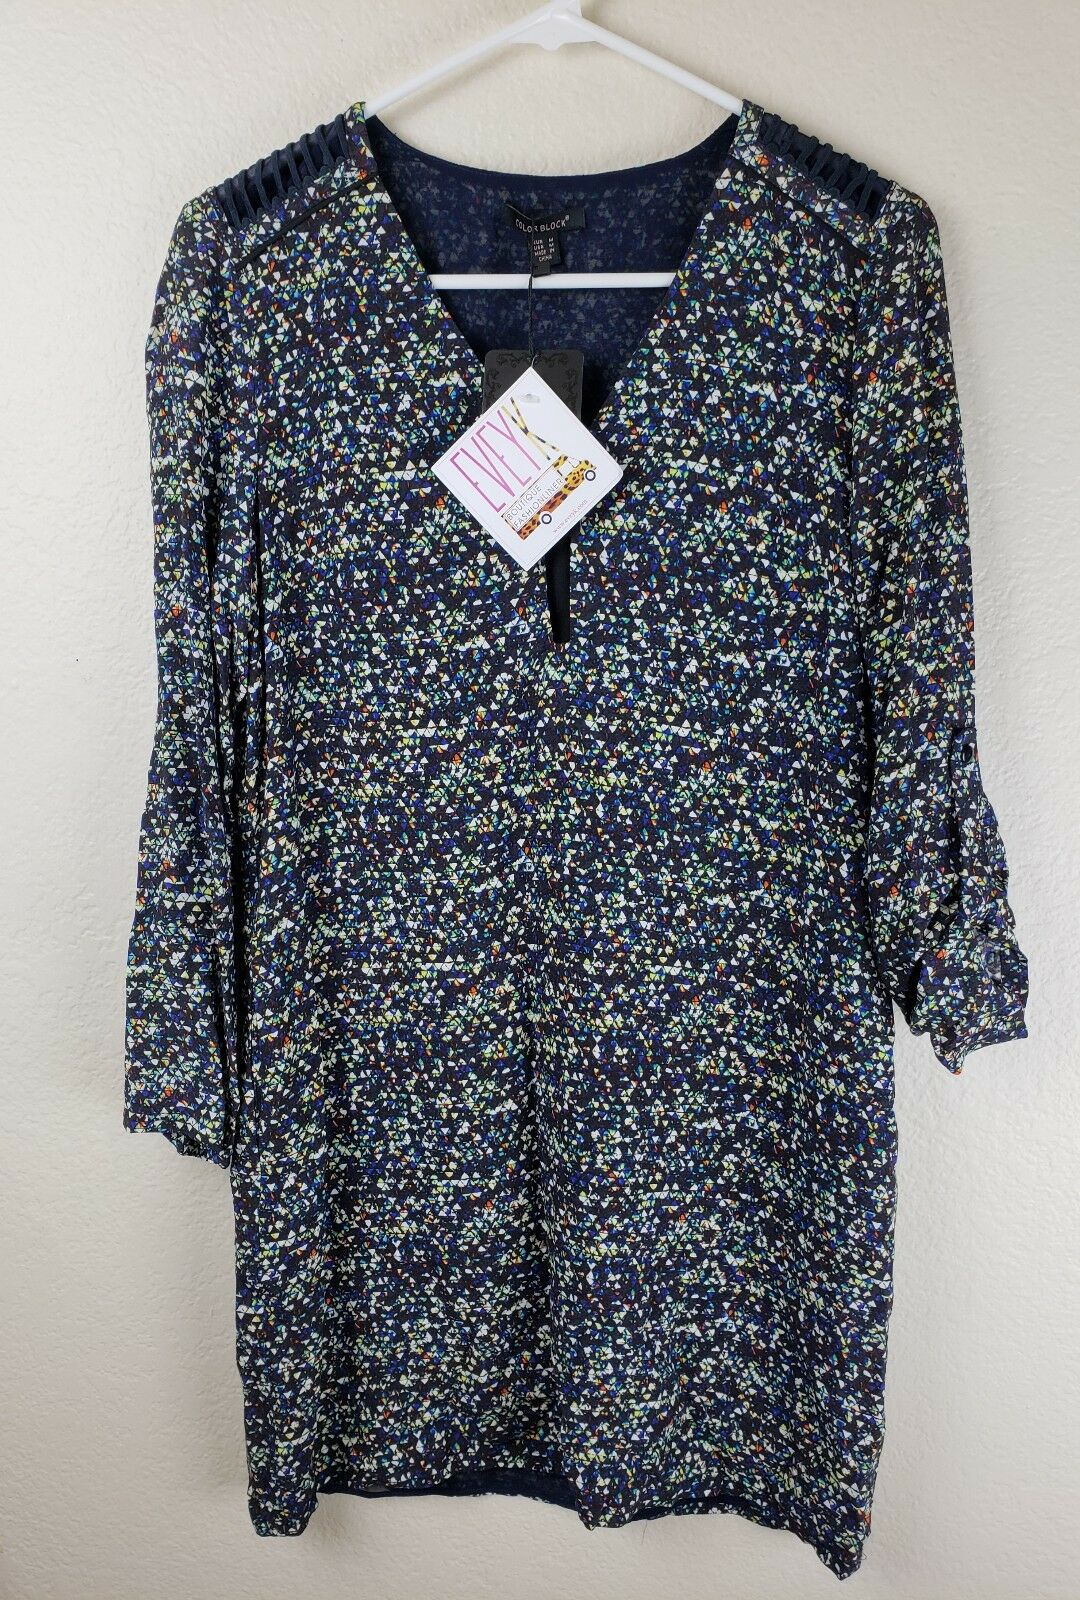 Woherren Farbeblock Evey K Tunic dress Spotted Dot Größe  Medium Free Shipping